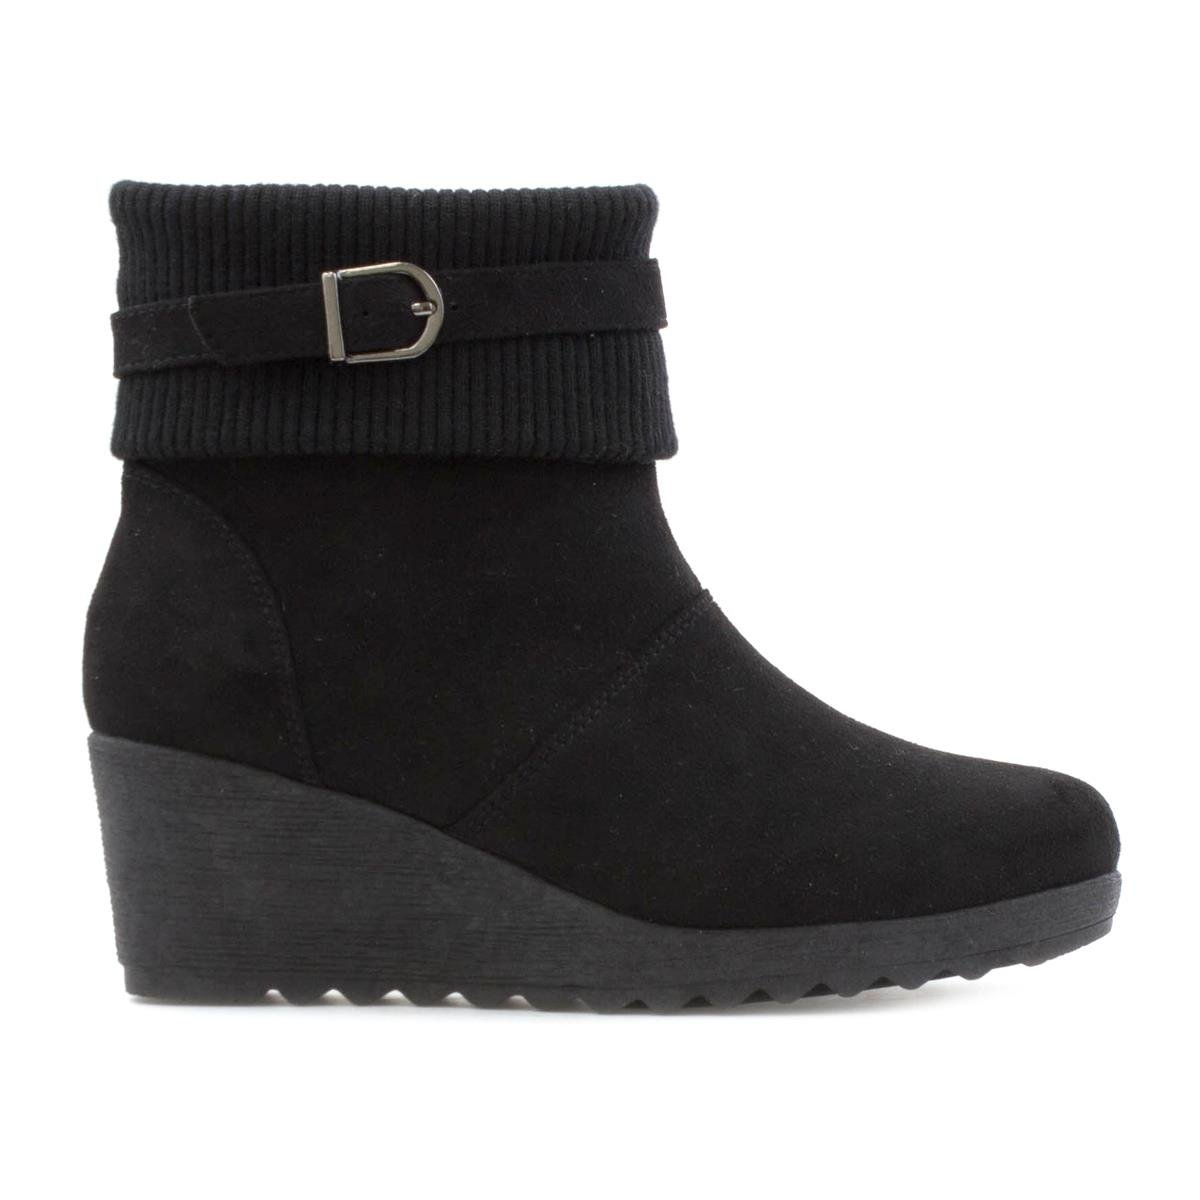 e5f0a8d09e0 Lilley Womens Wedge Ankle Boot in Black - Size 9 UK - Black  Amazon.co.uk   Shoes   Bags